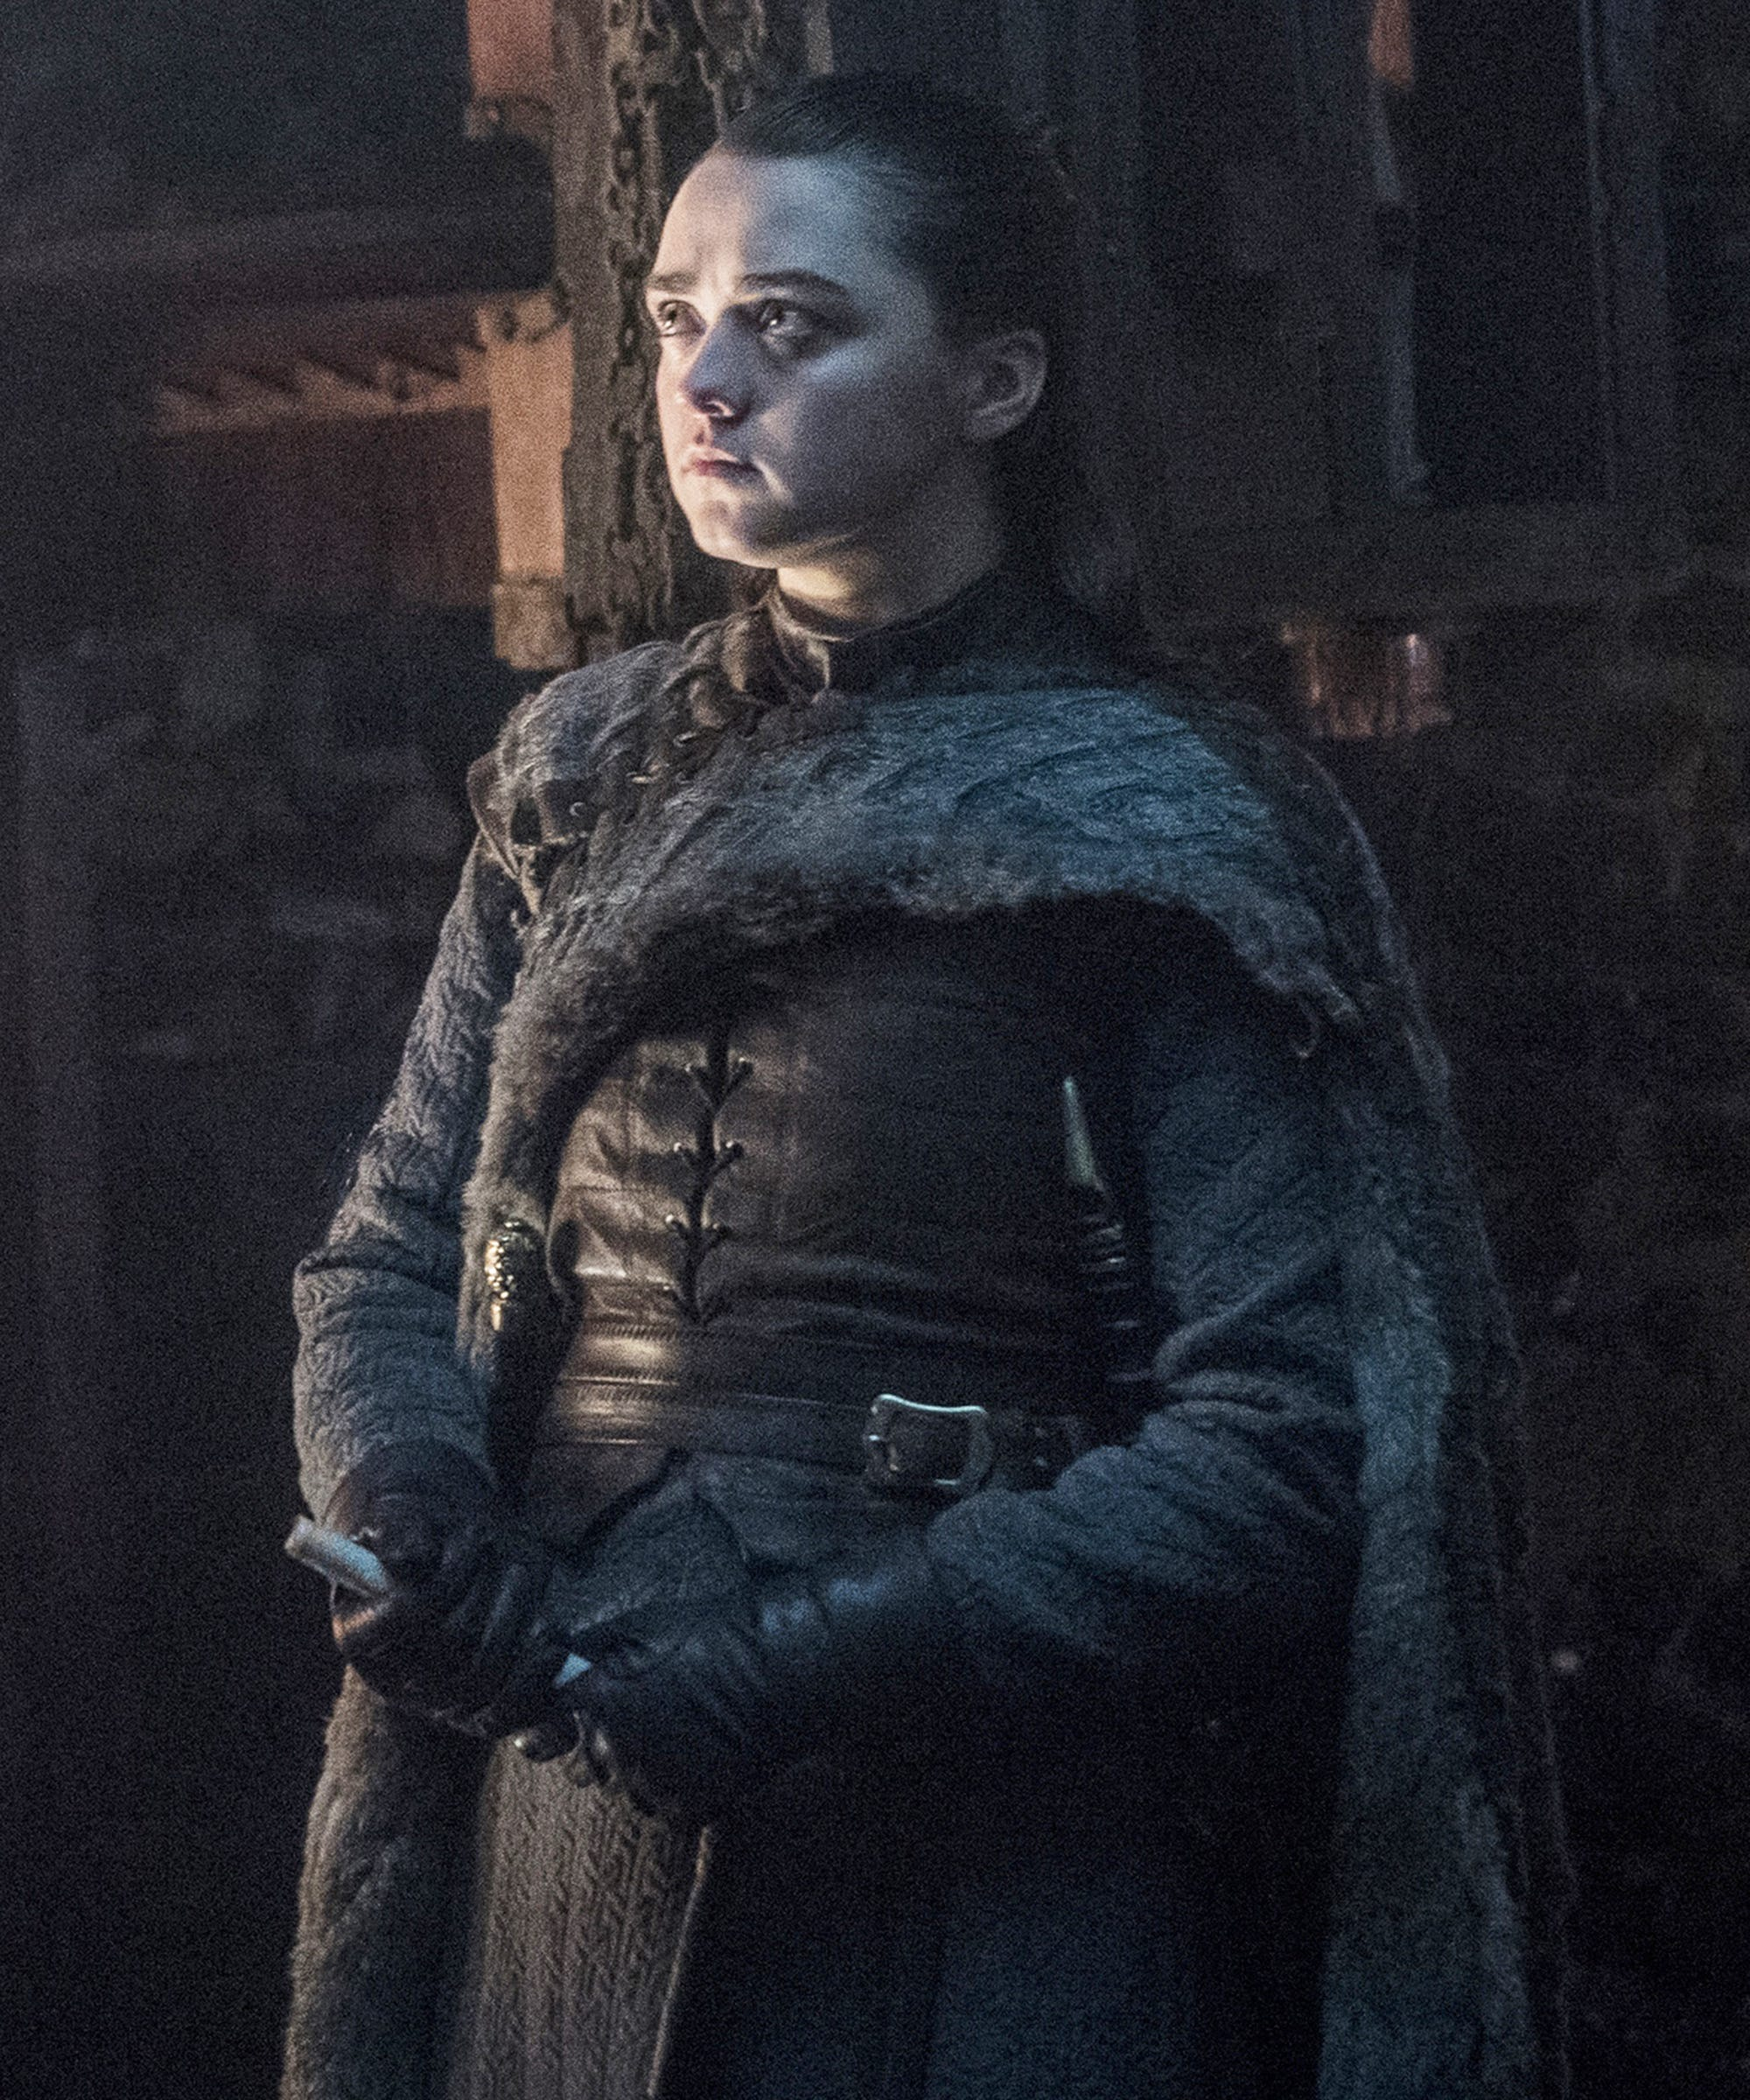 Does This Photo Prove Arya Stark Really Is Going To Kill An Ice Dragon On Thrones?